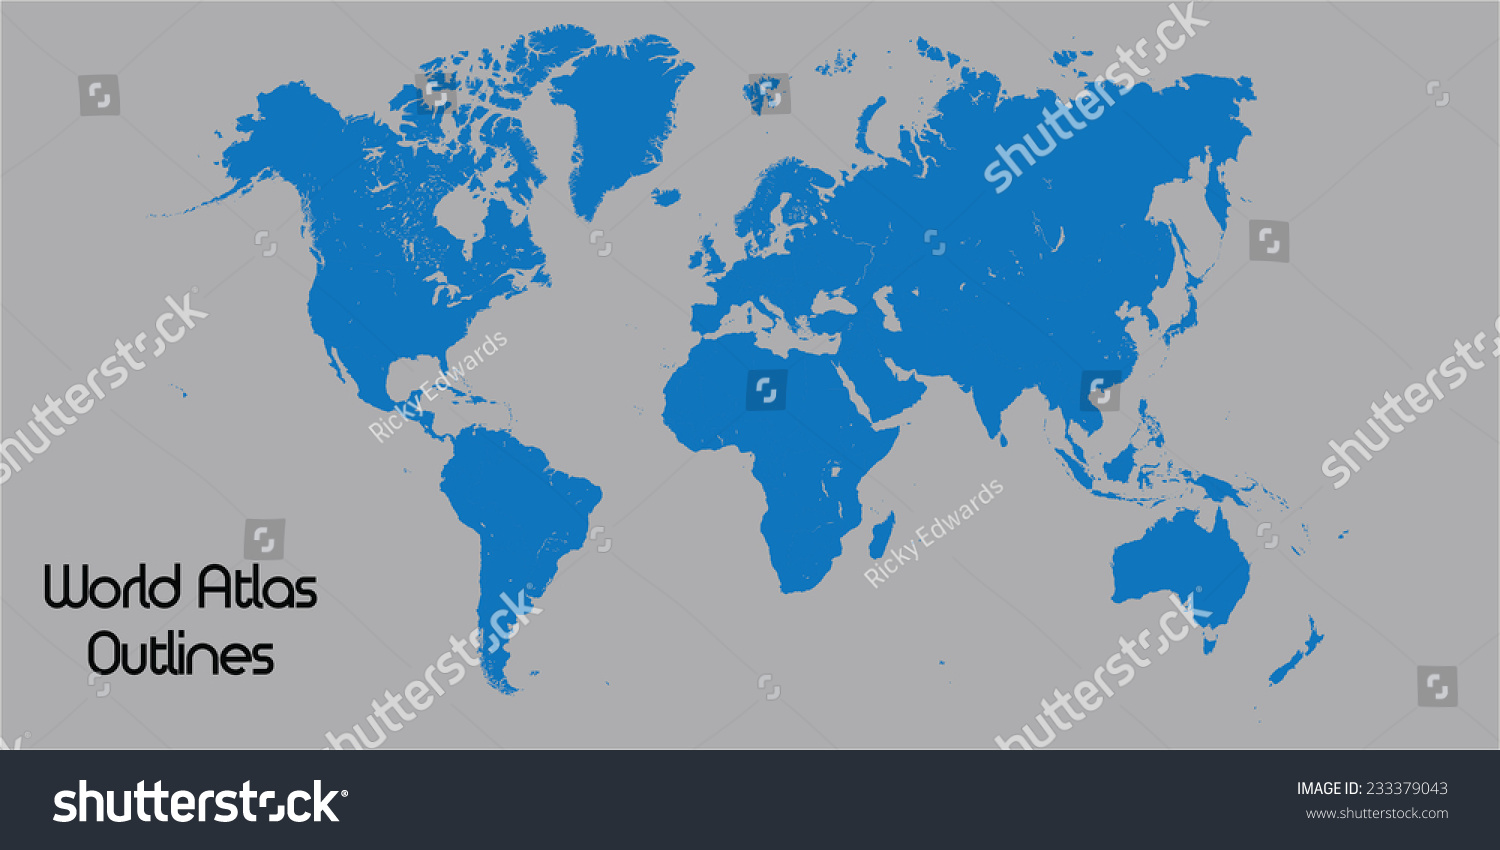 Outlines world atlas stock vector 233379043 shutterstock outlines of world atlas gumiabroncs Images